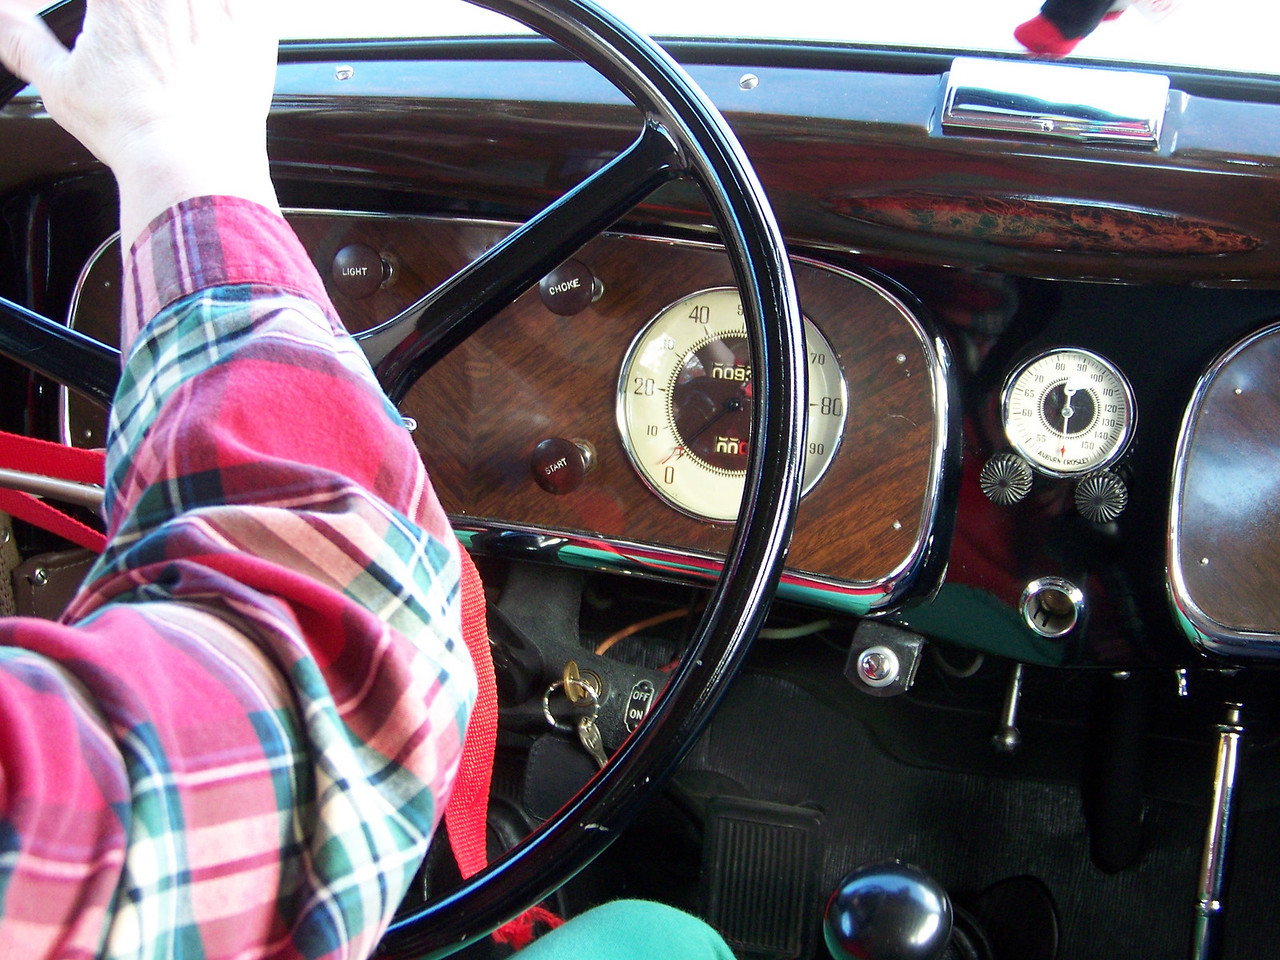 A closer look at the dashboard.<br /> [1934 Auburn antique car]